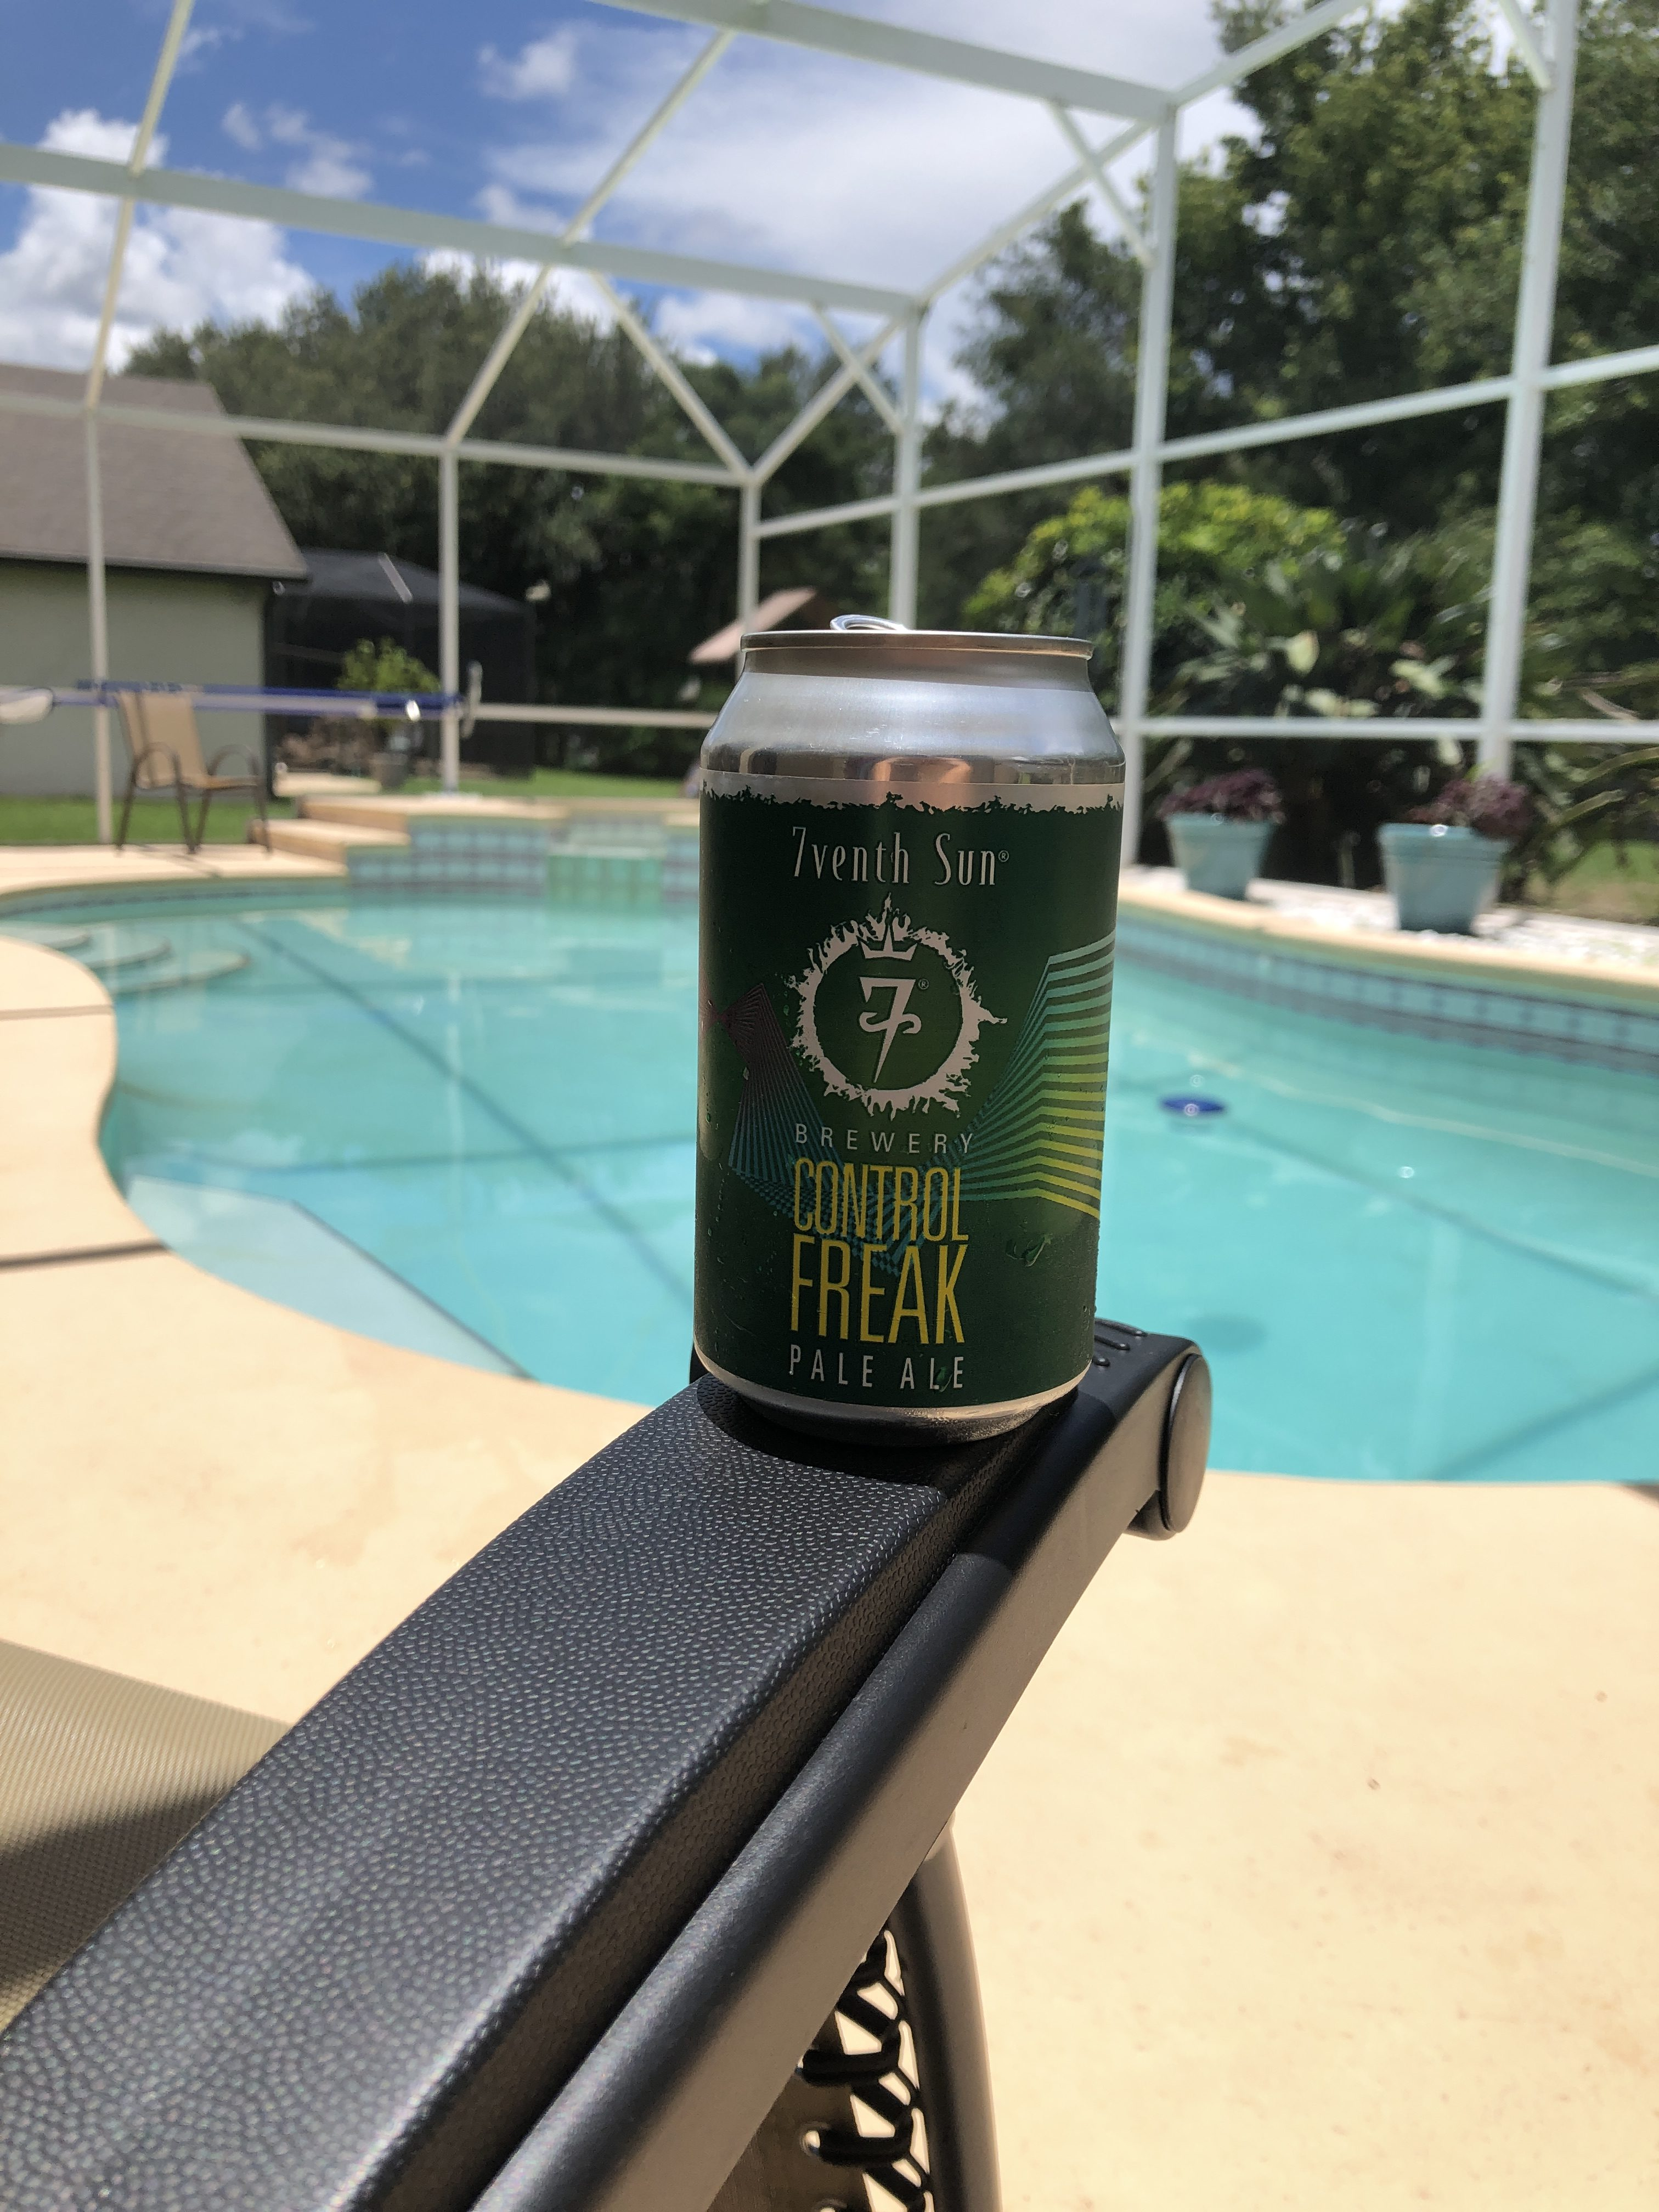 7venth Sun Control Freak by the pool